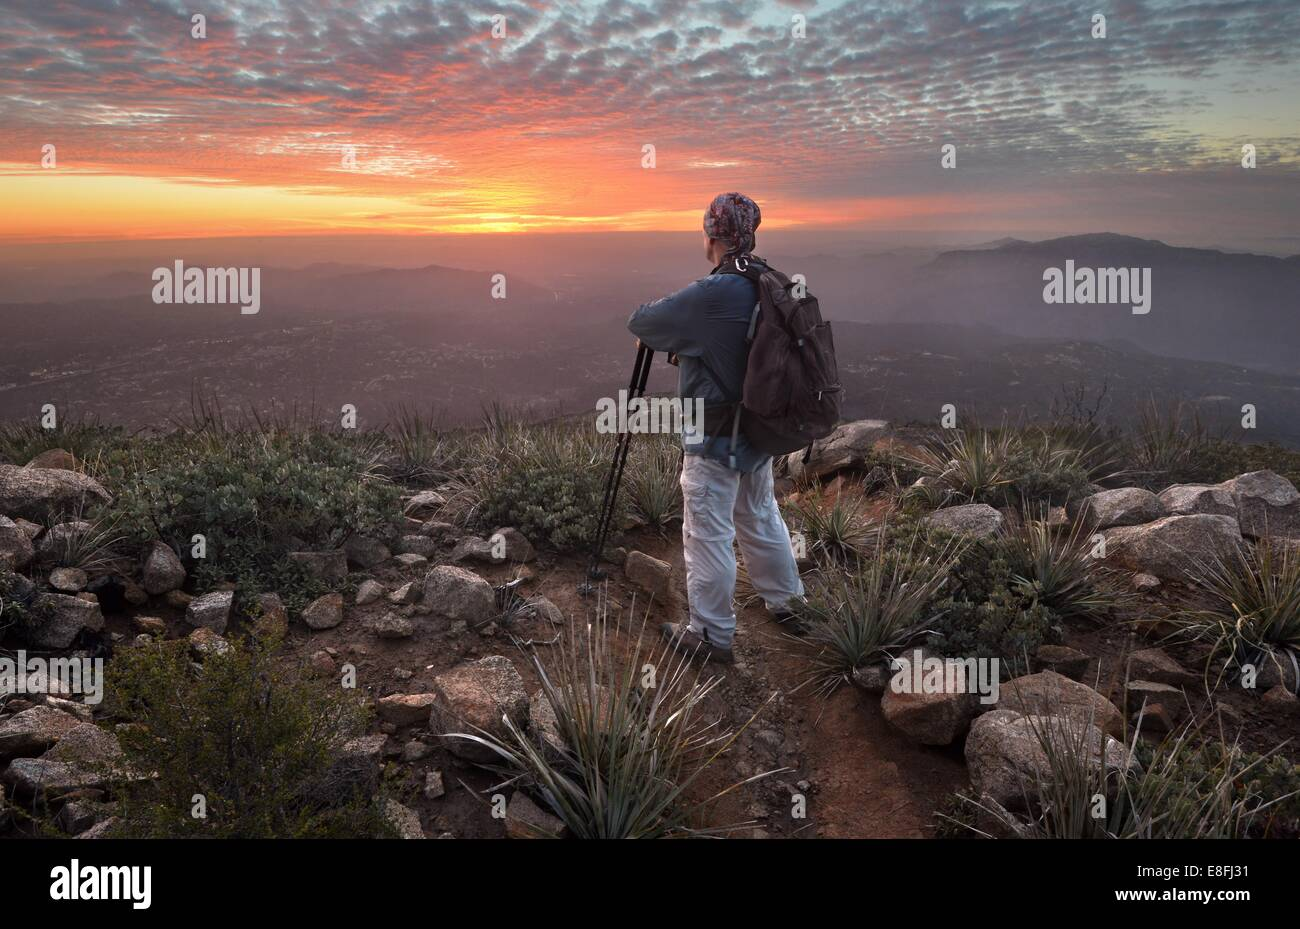 Man looking at view at sunset, Cleveland National Forest, Californie, Amérique, USA Photo Stock